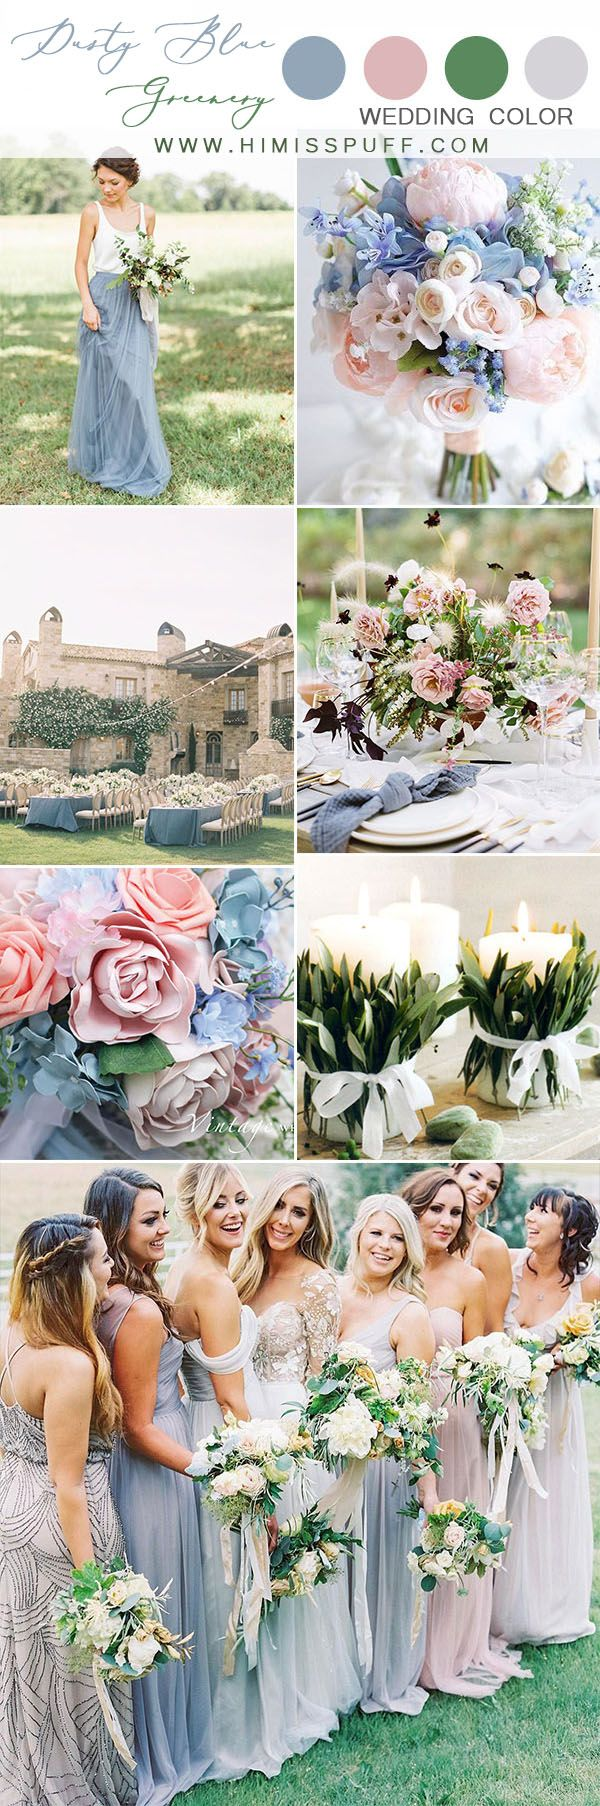 Top 10 Wedding Color Scheme Ideas For 2021 Green Wedding Colors Blue Themed Wedding Wedding Cake Dusty Blue